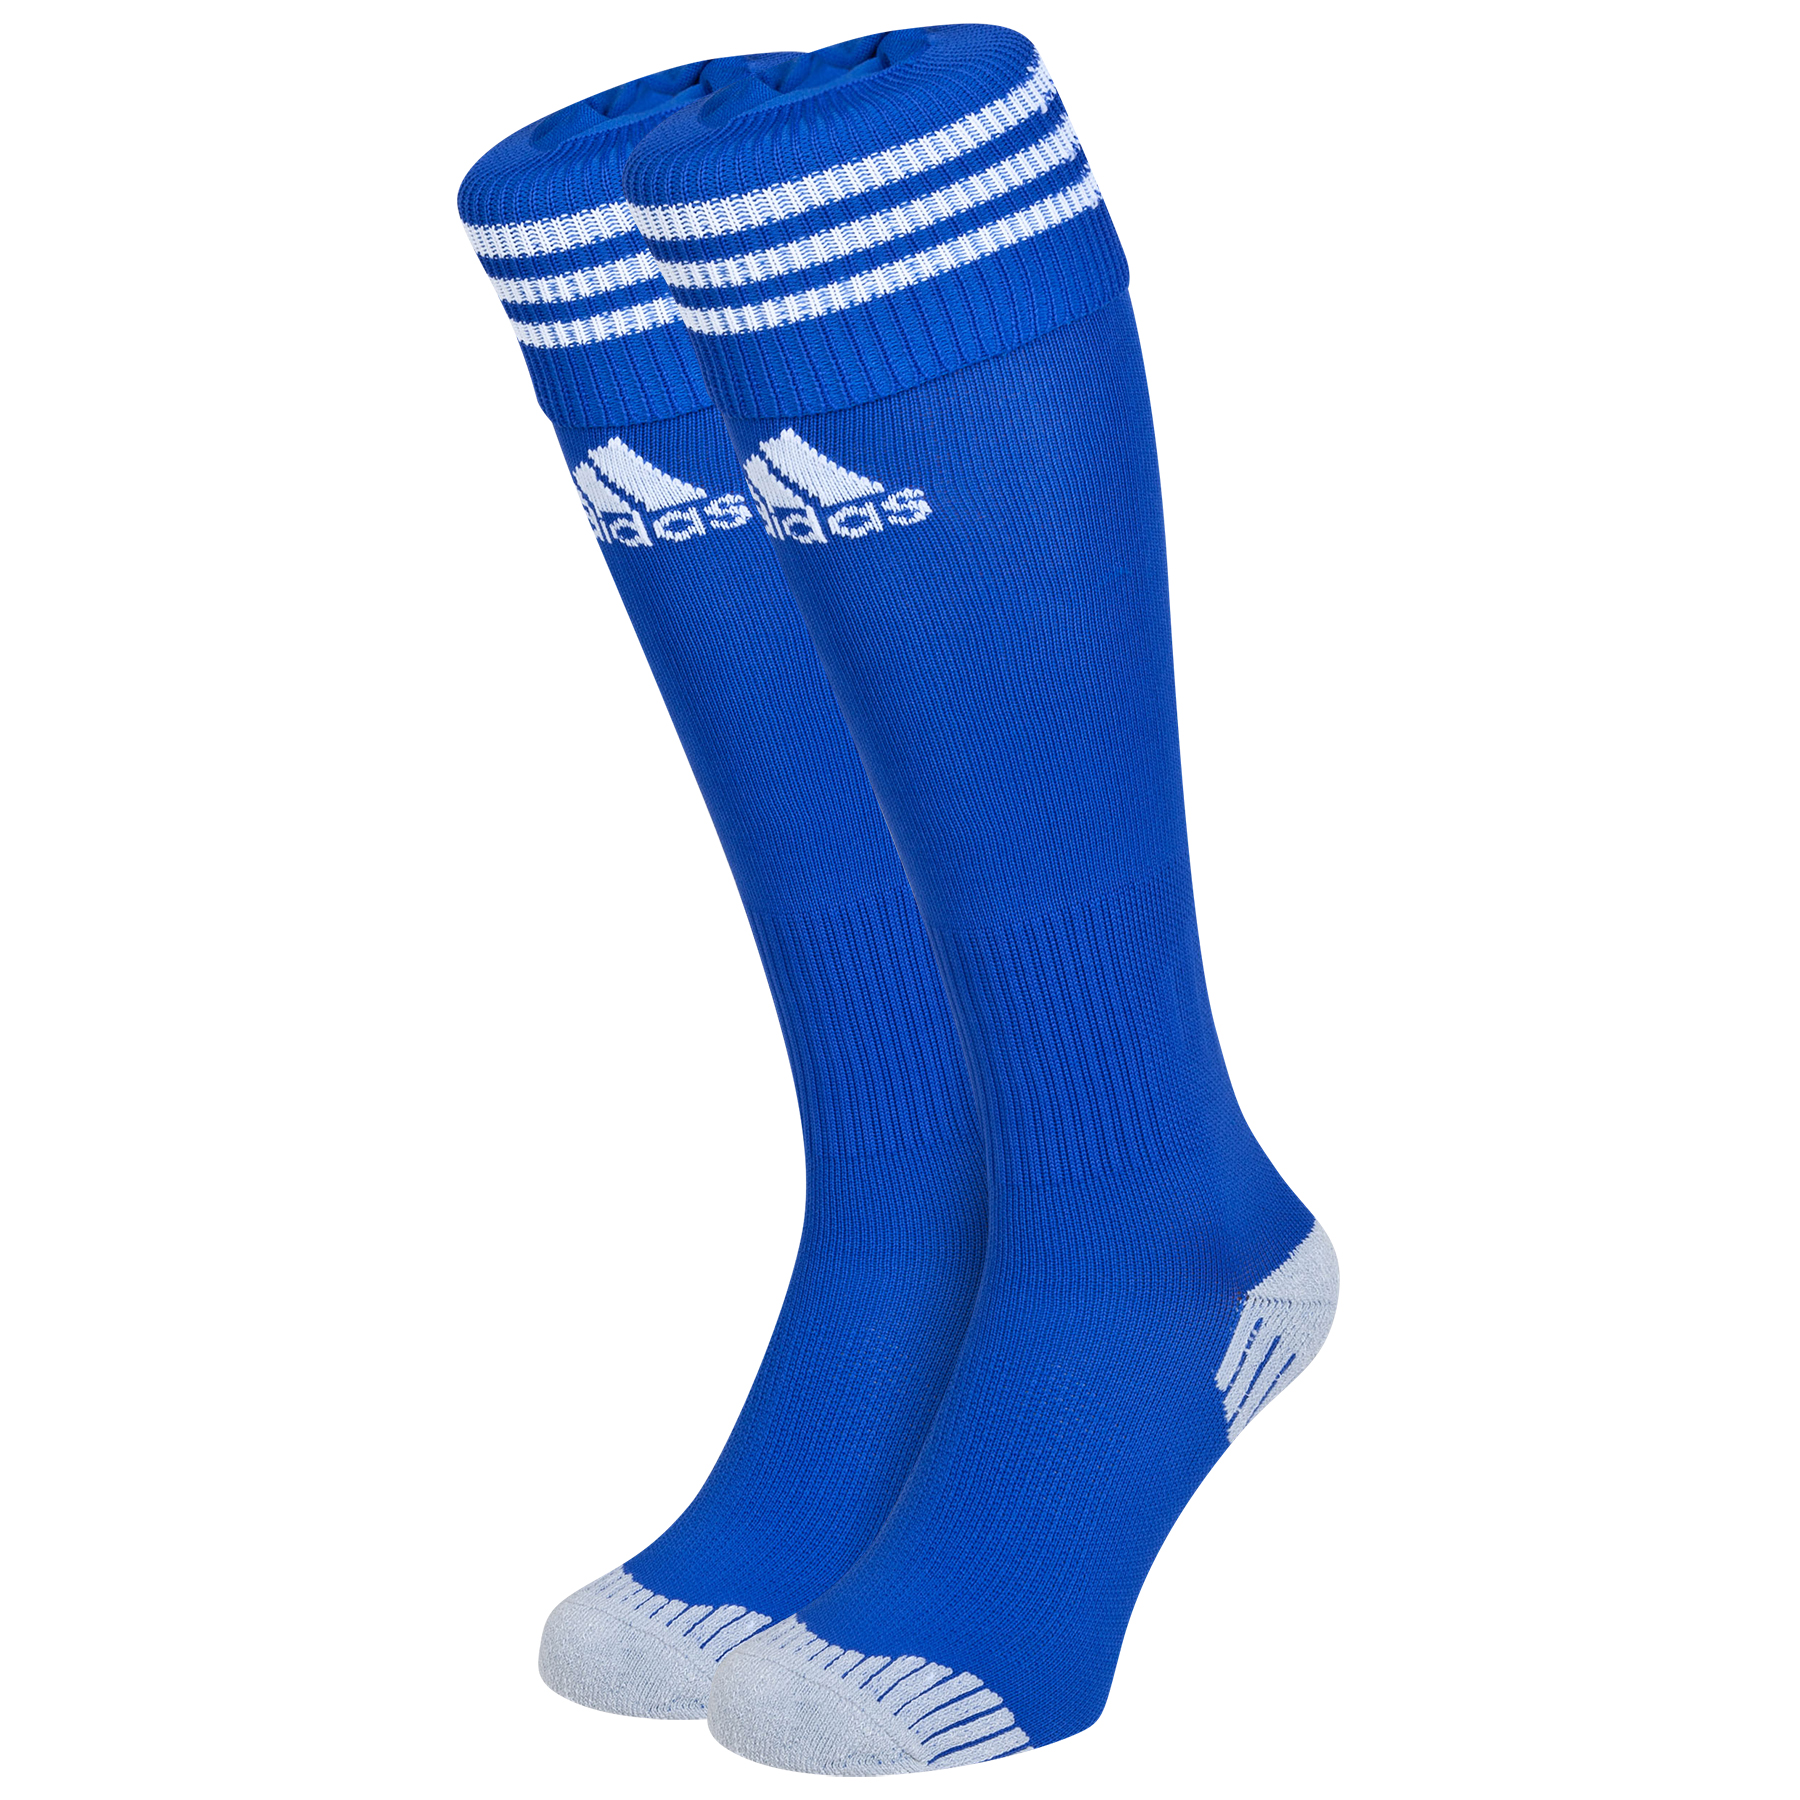 Nottingham Forest Limited Edition 3rd Third Sock 2014/15 Blue